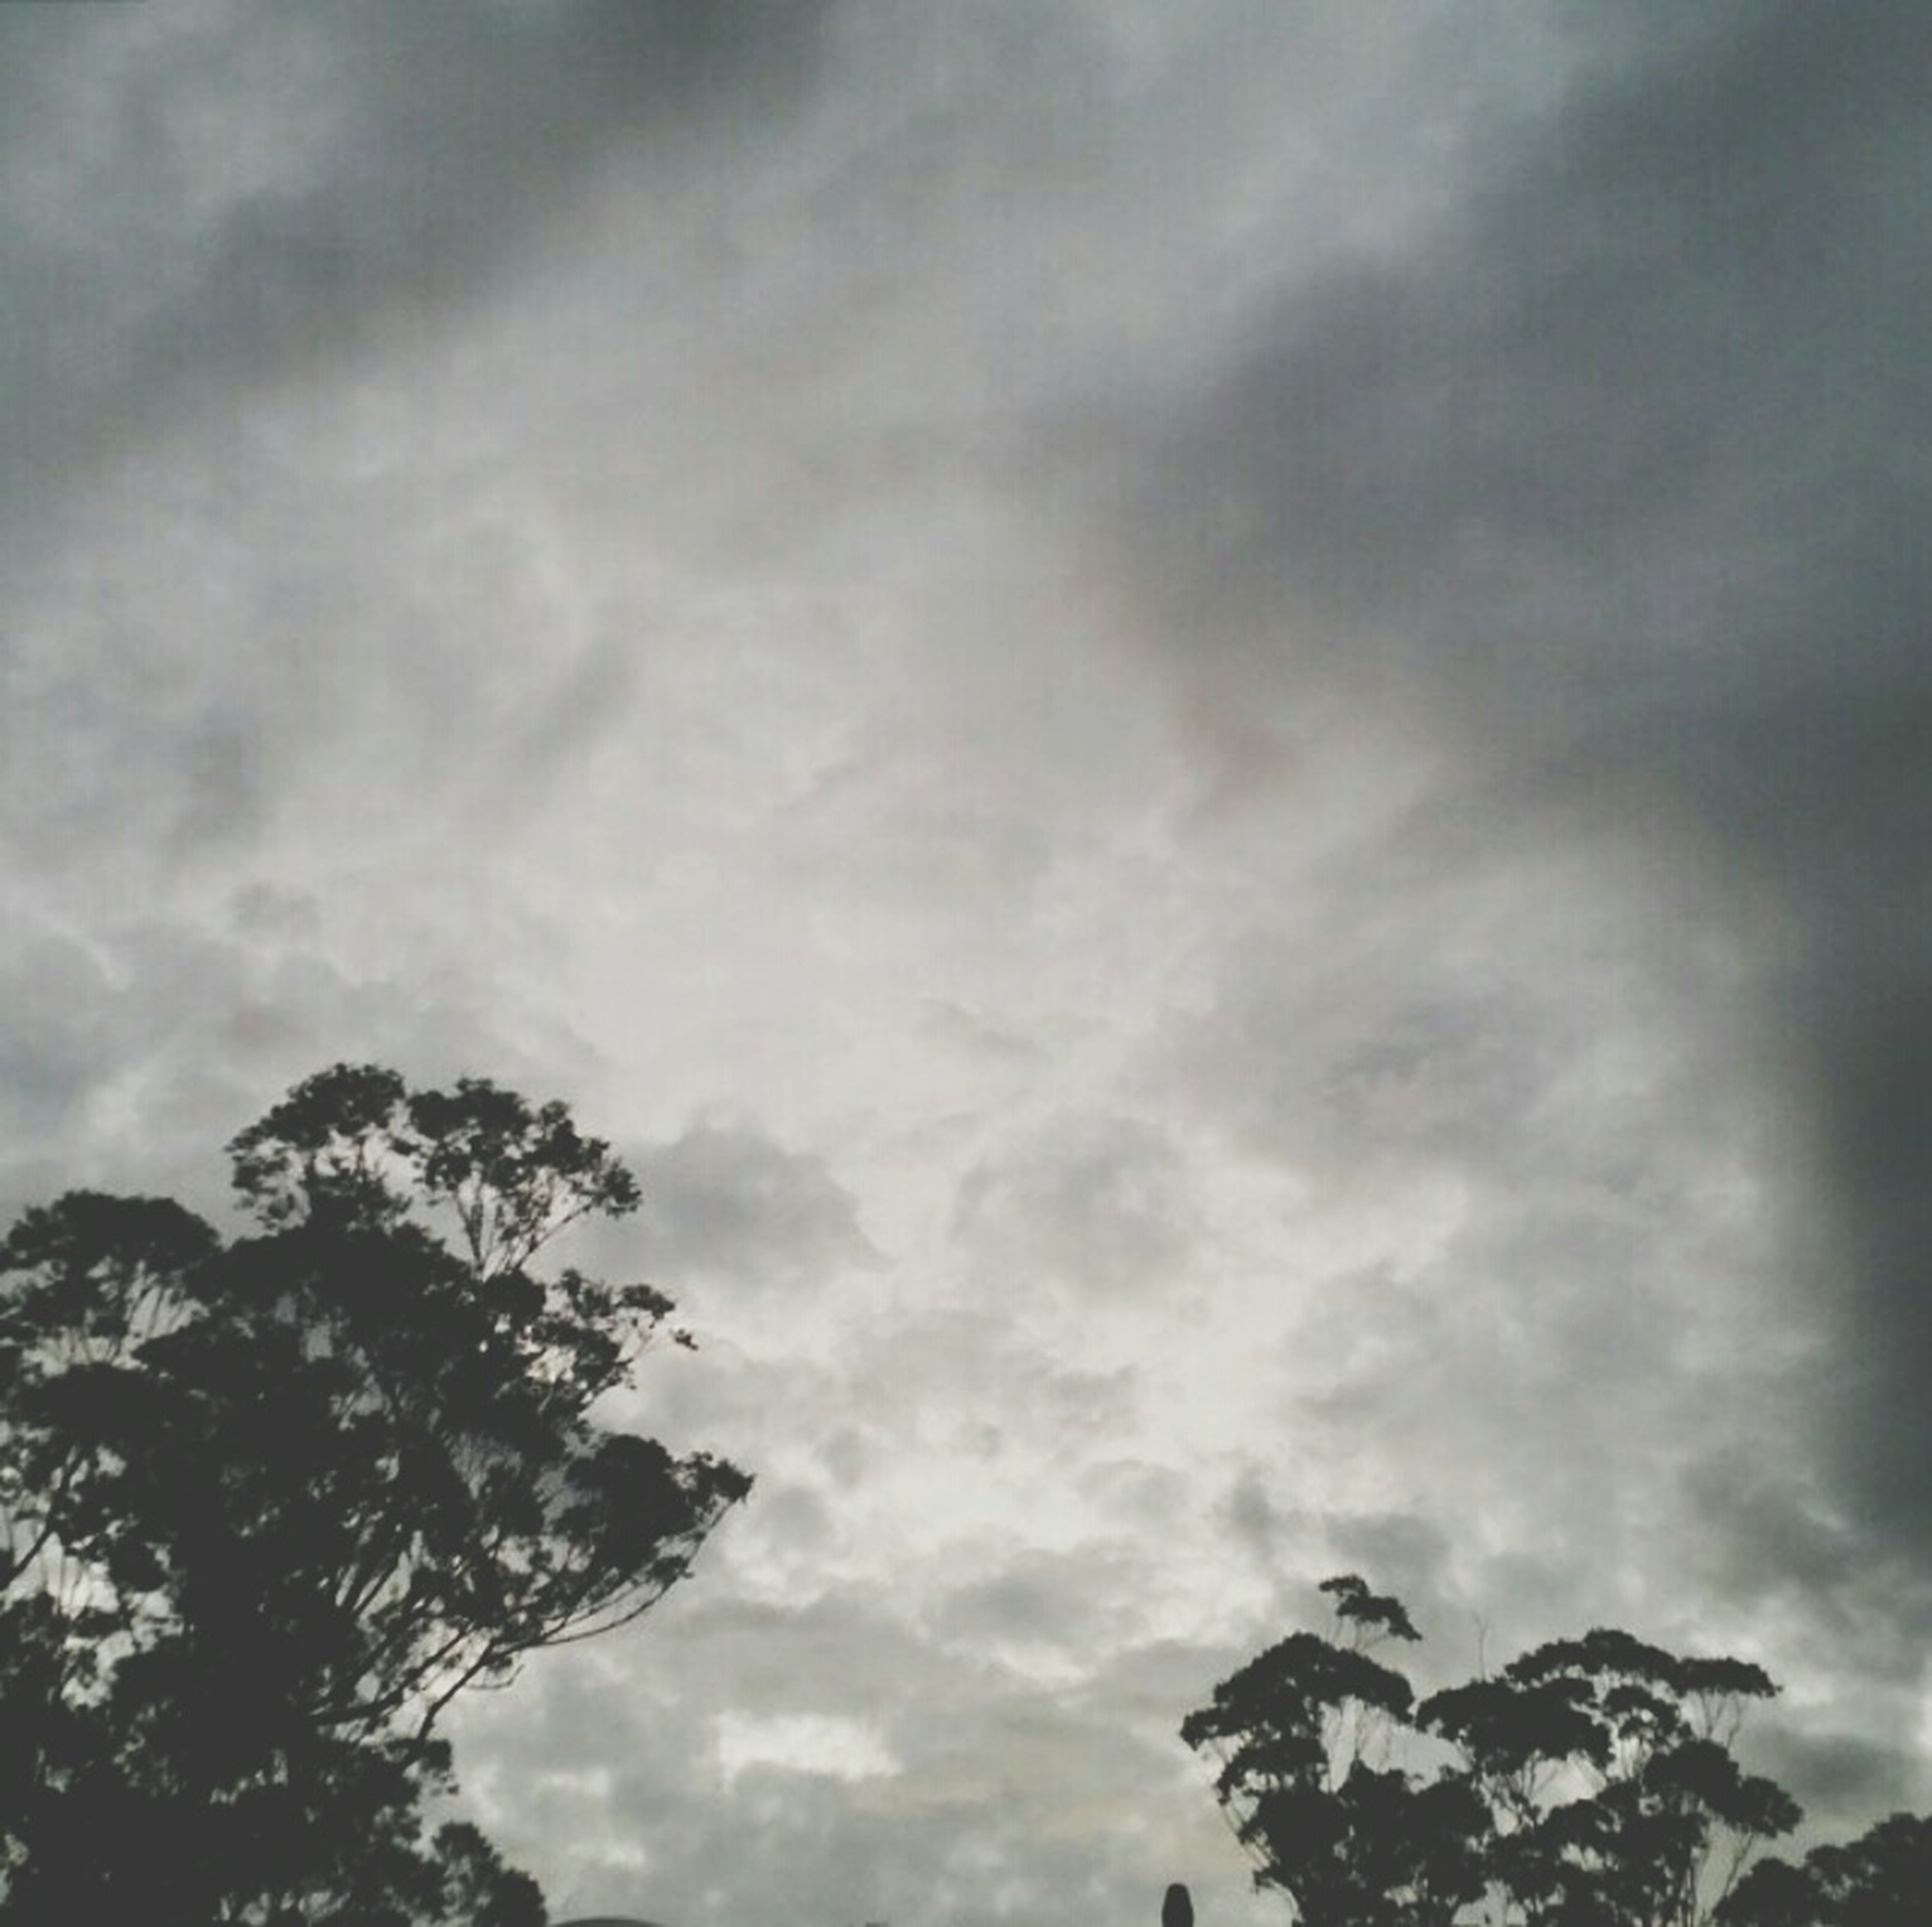 low angle view, sky, cloud - sky, cloudy, tree, weather, overcast, nature, cloud, tranquility, beauty in nature, scenics, silhouette, high section, tranquil scene, outdoors, branch, day, no people, cloudscape